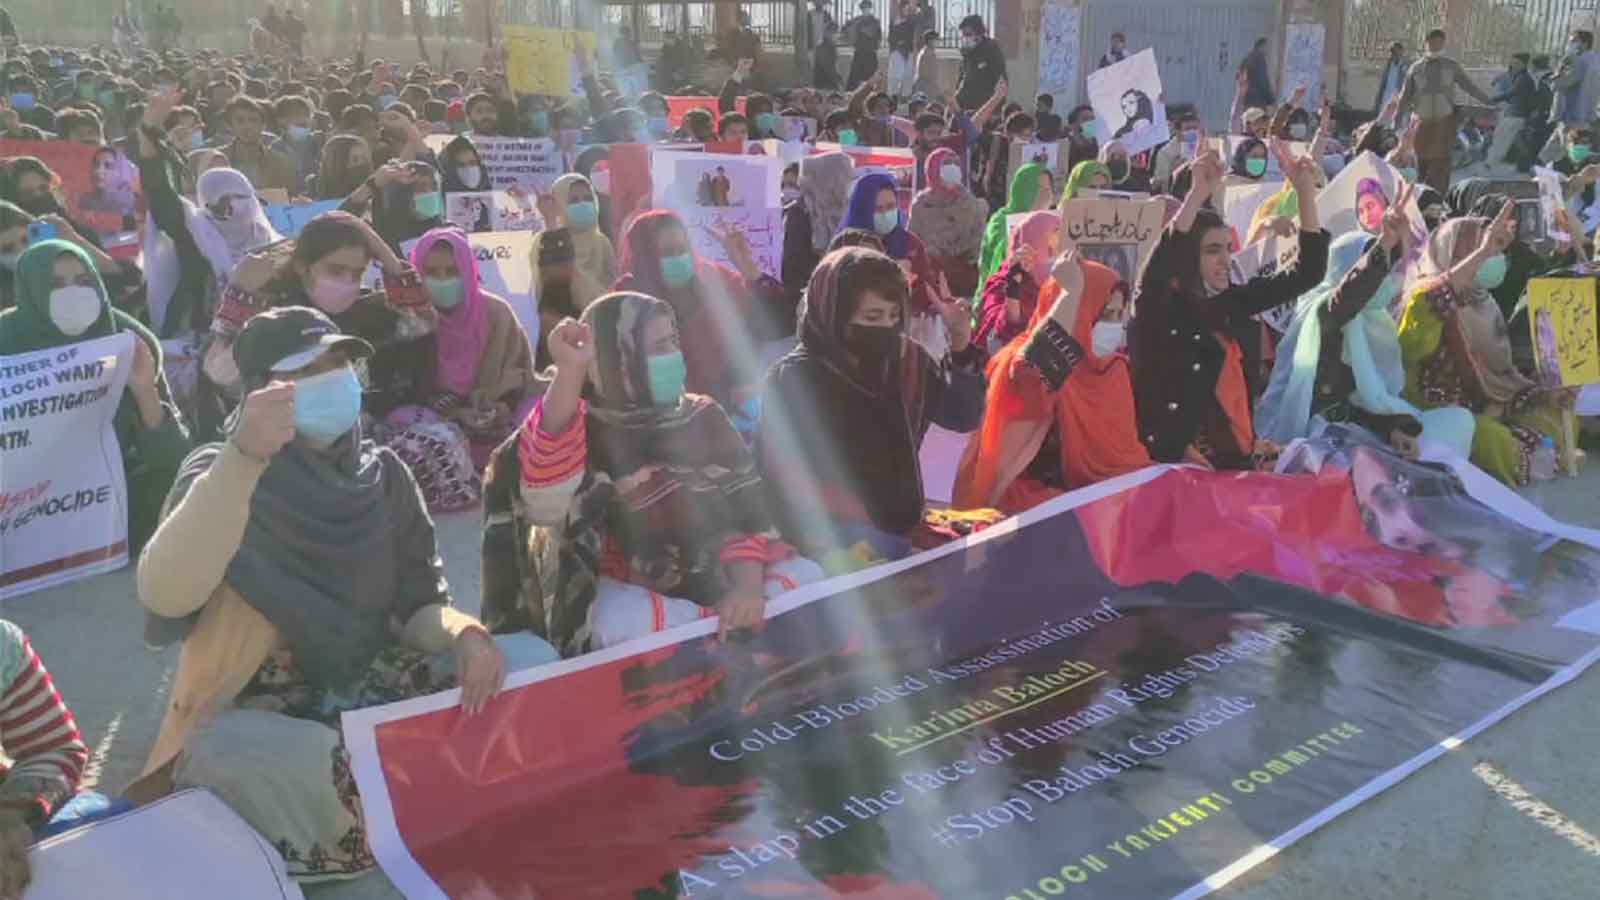 armed-struggle-in-balochistan-inspired-by-pakistans-decades-old-colonial-rule-says-activist